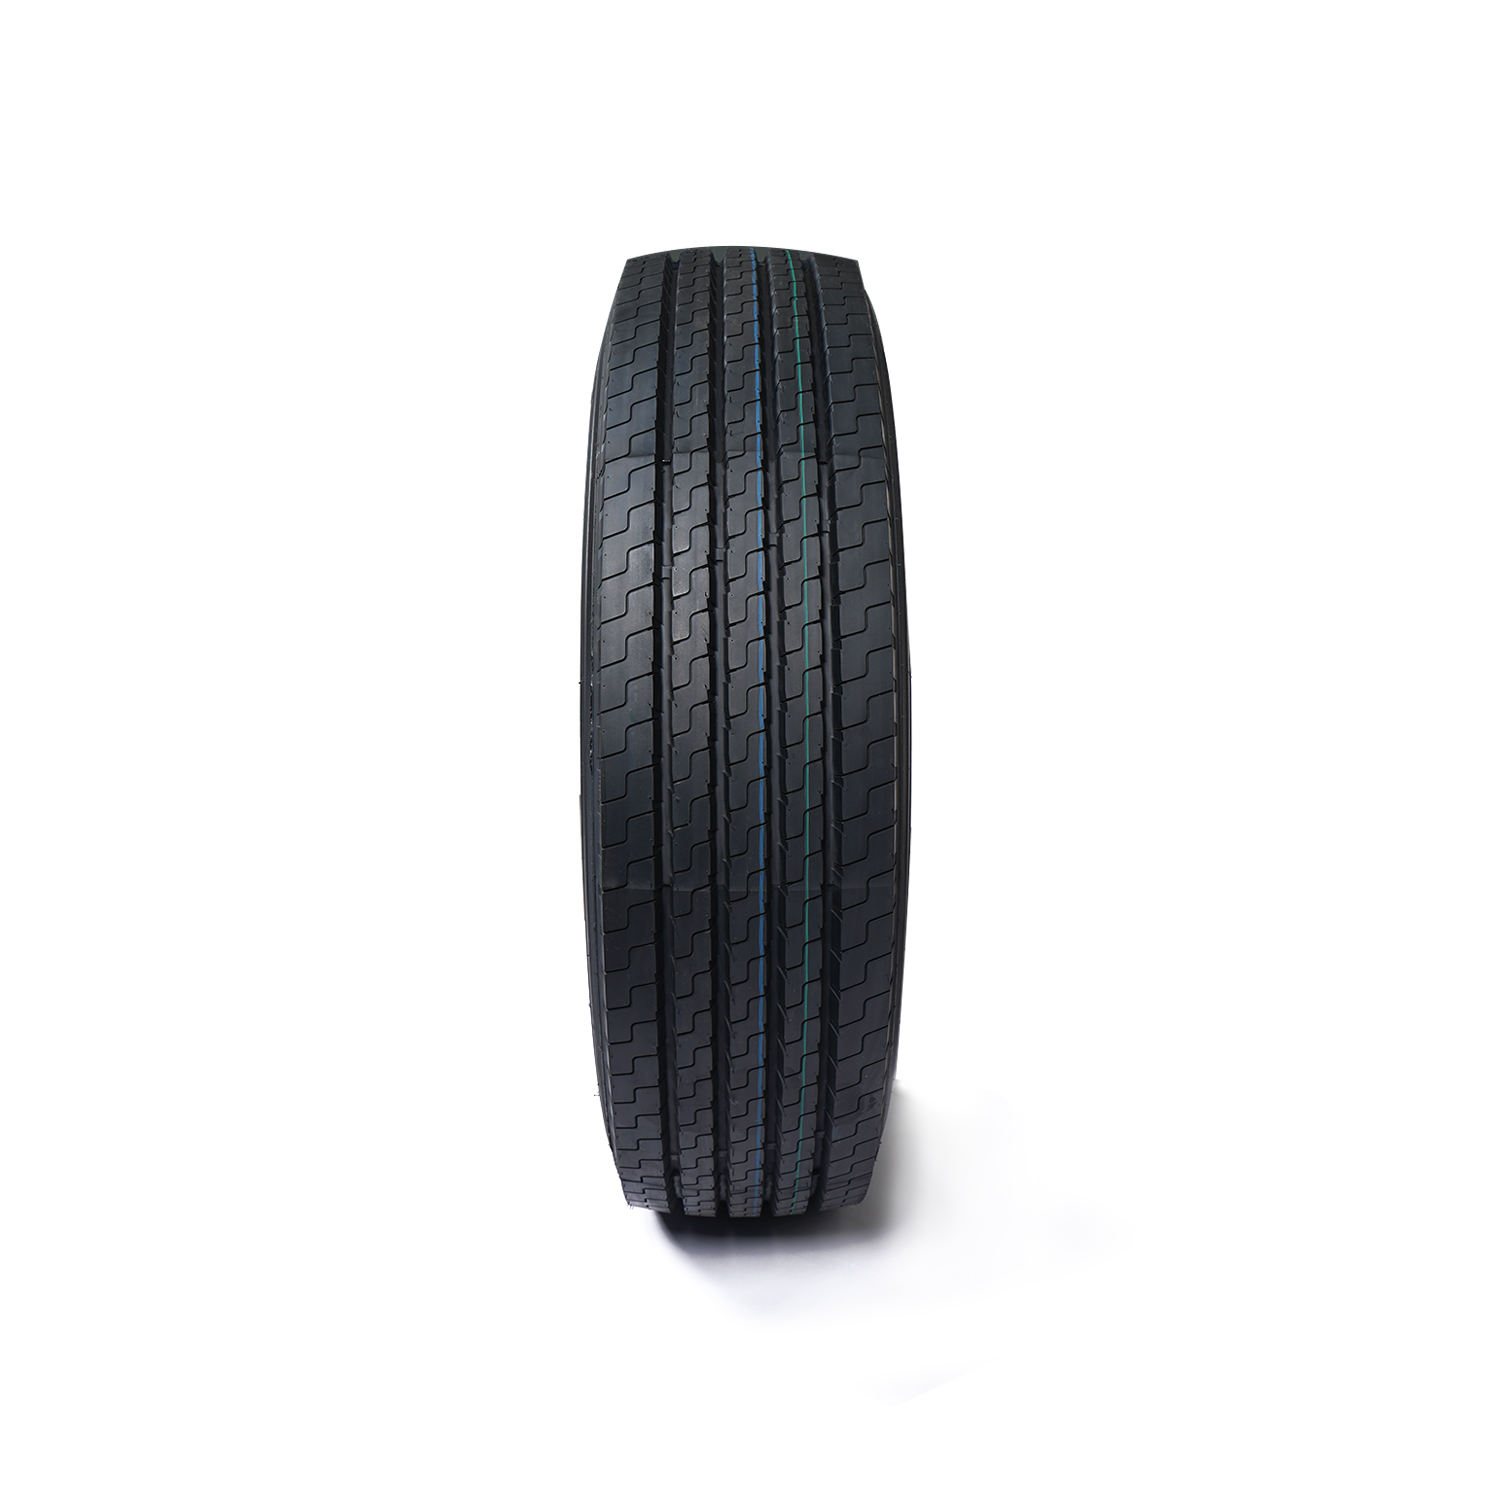 295 80r 22.5 Tires <span class=keywords><strong>gute</strong></span> verkäufe Radial Tubeless Tyre Prices 295/80r 22.5